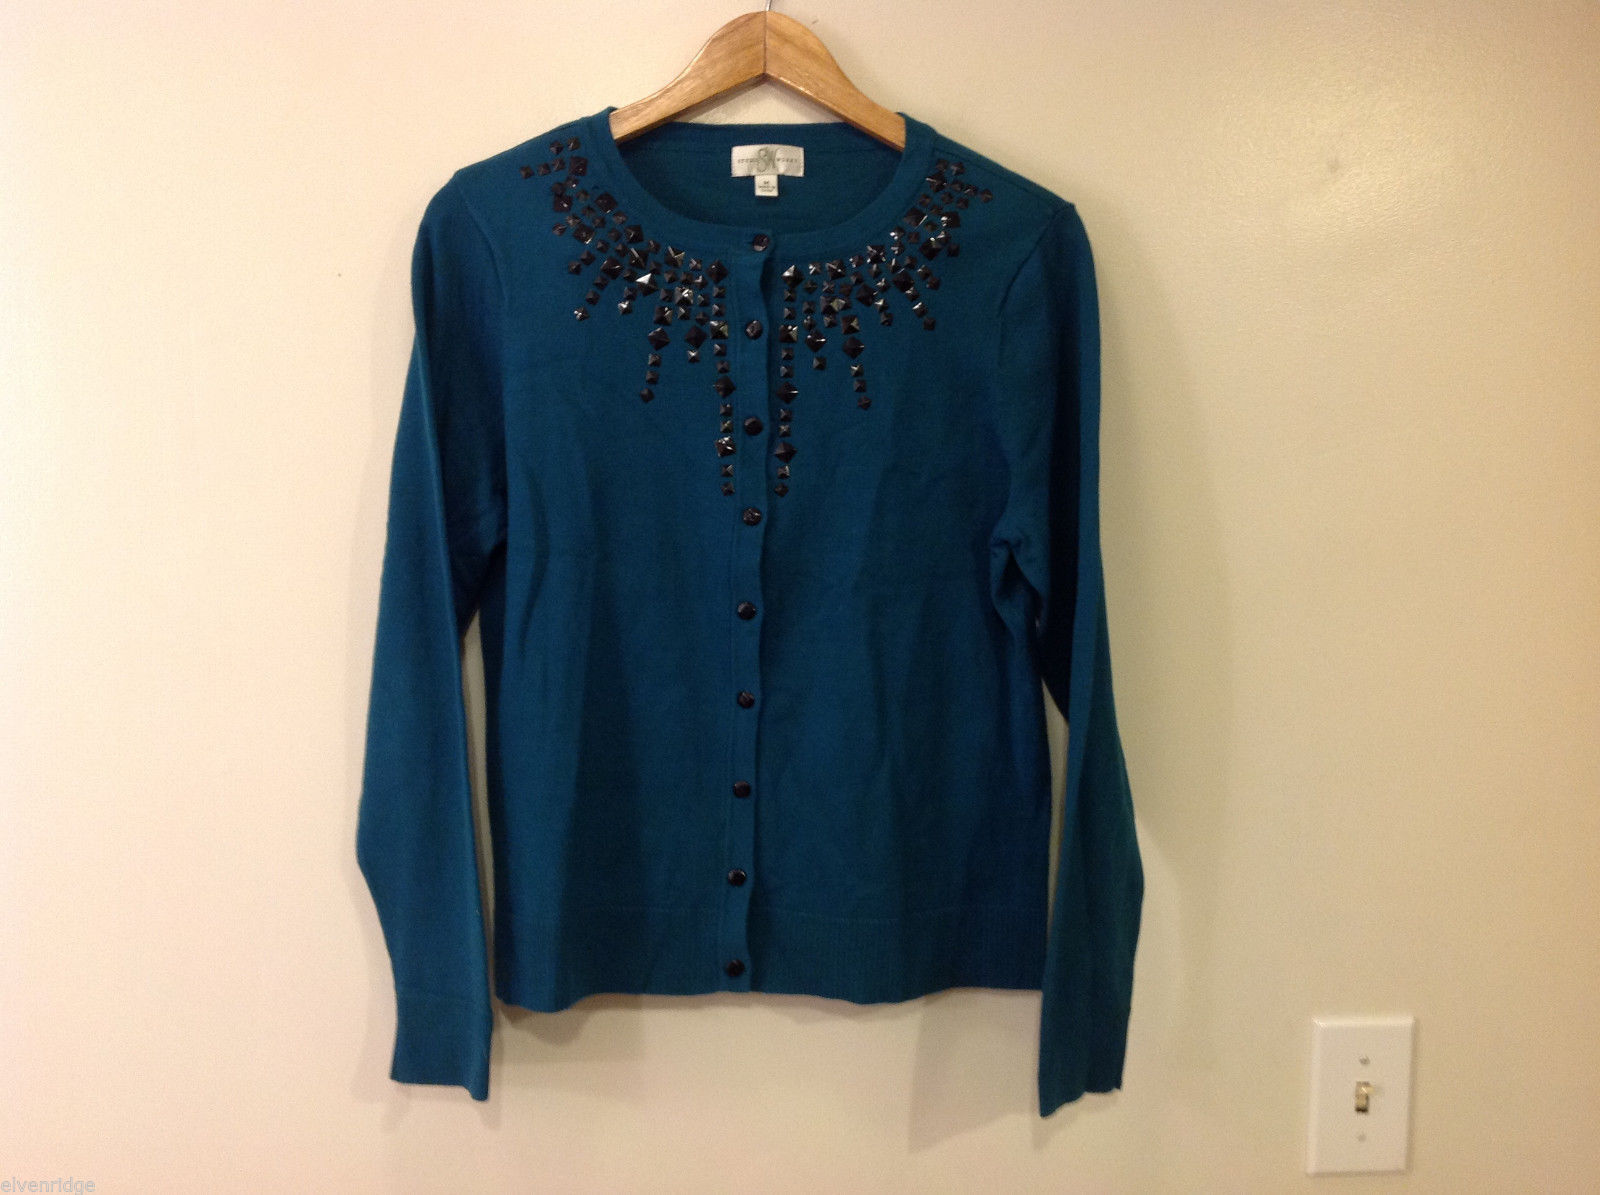 Studio Works Womens' Size M Dark Teal Cardigan Sweater w/ Black Beading at Neck